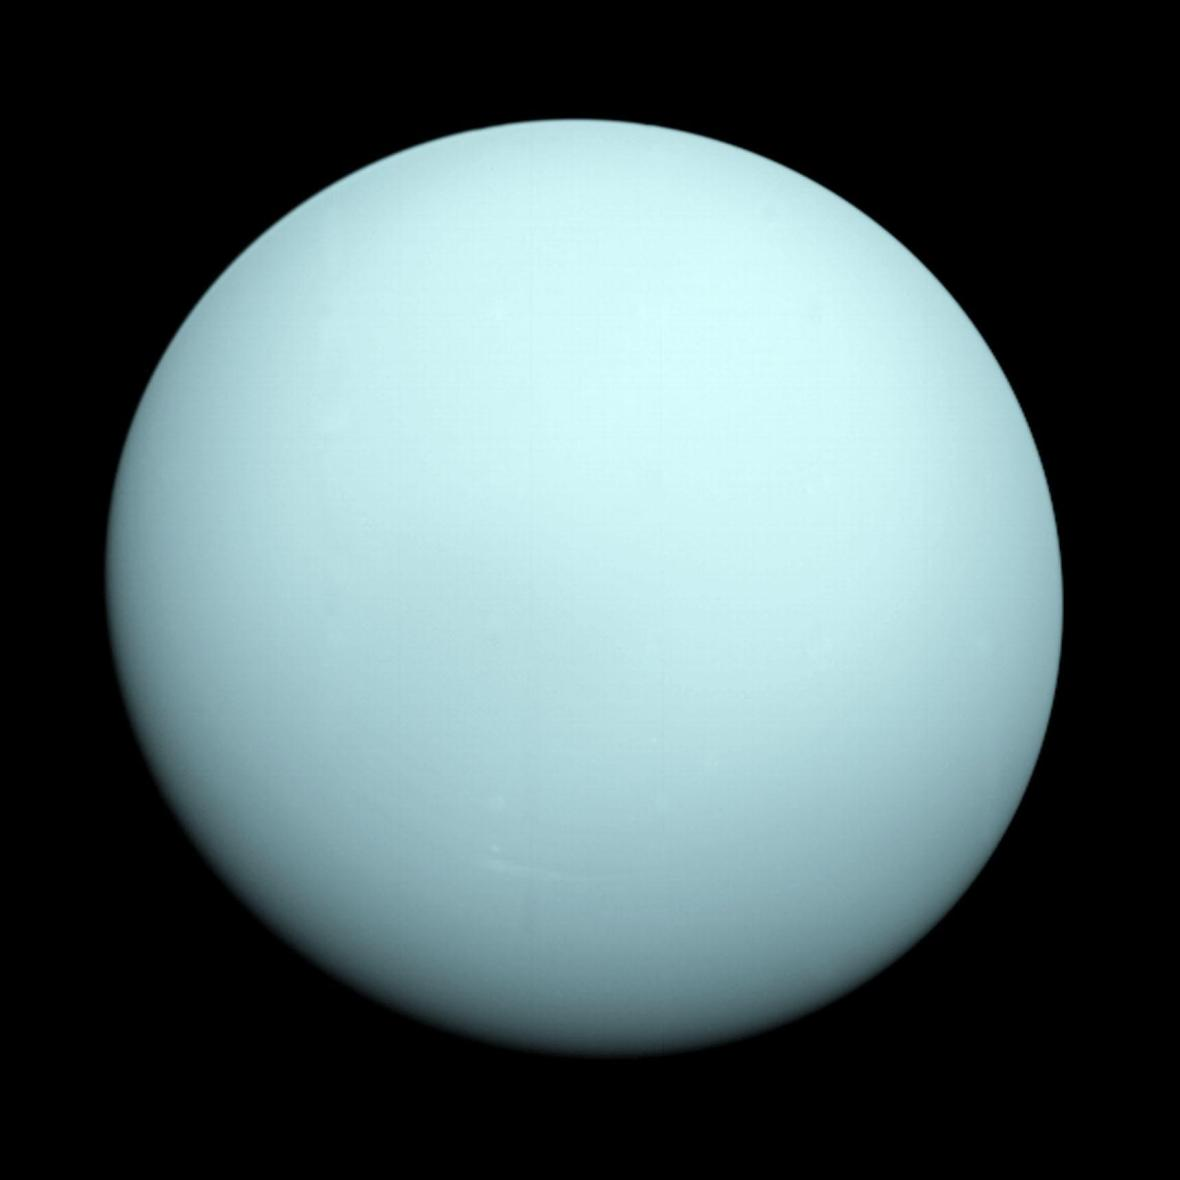 This is an image of the planet Uranus taken by the spacecraft Voyager 2 on January 14th 1986 from a distance of approximately 7.8 milllion miles ( 12.7 million km ).